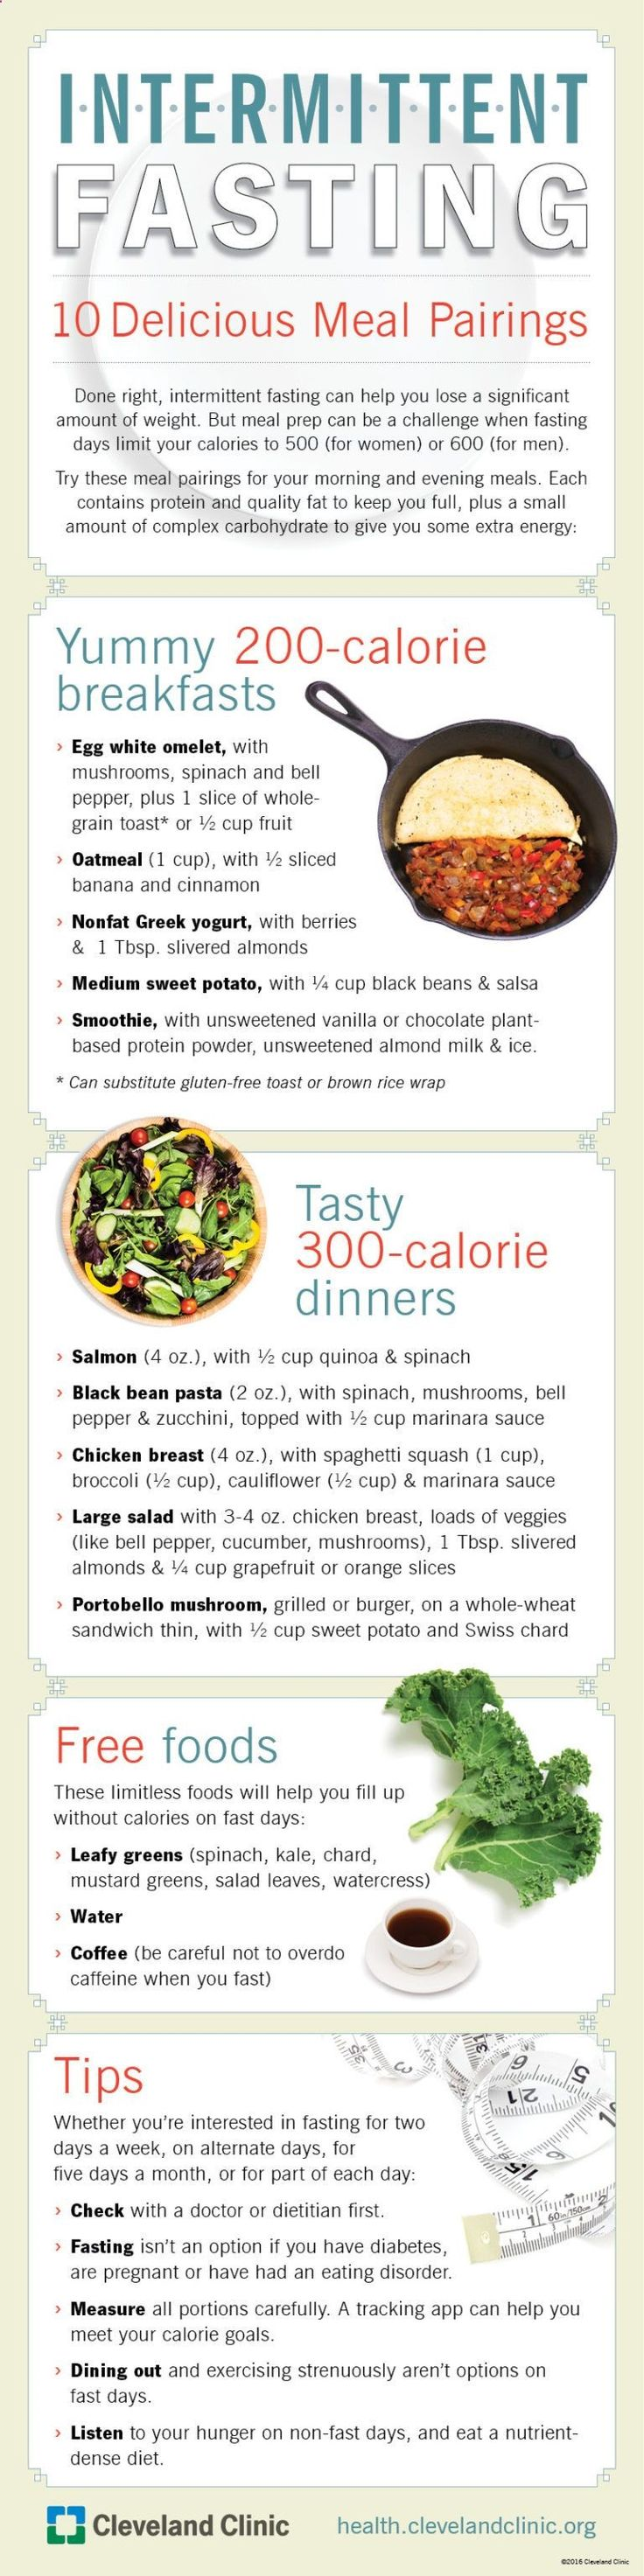 Weight loss vegetables juice image 9